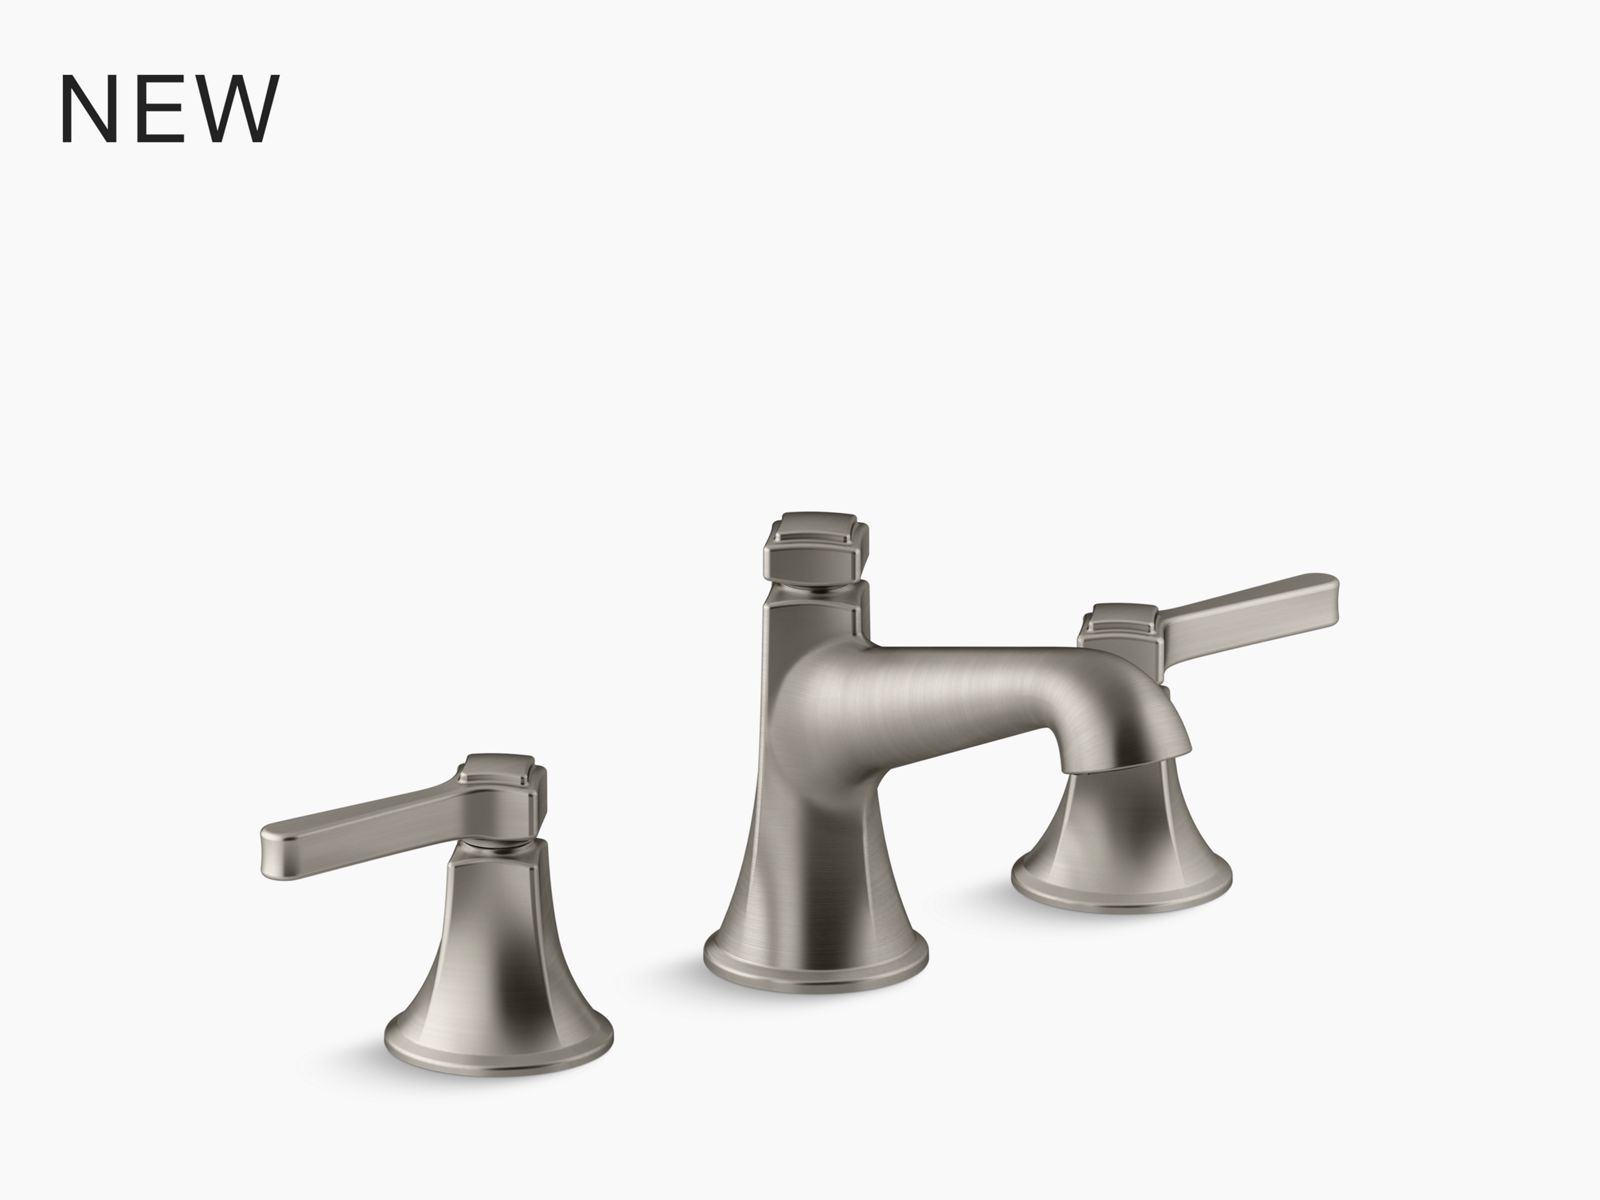 memoirs stately deck mount bath faucet trim for high flow valve with diverter spout and deco lever handles valve not included